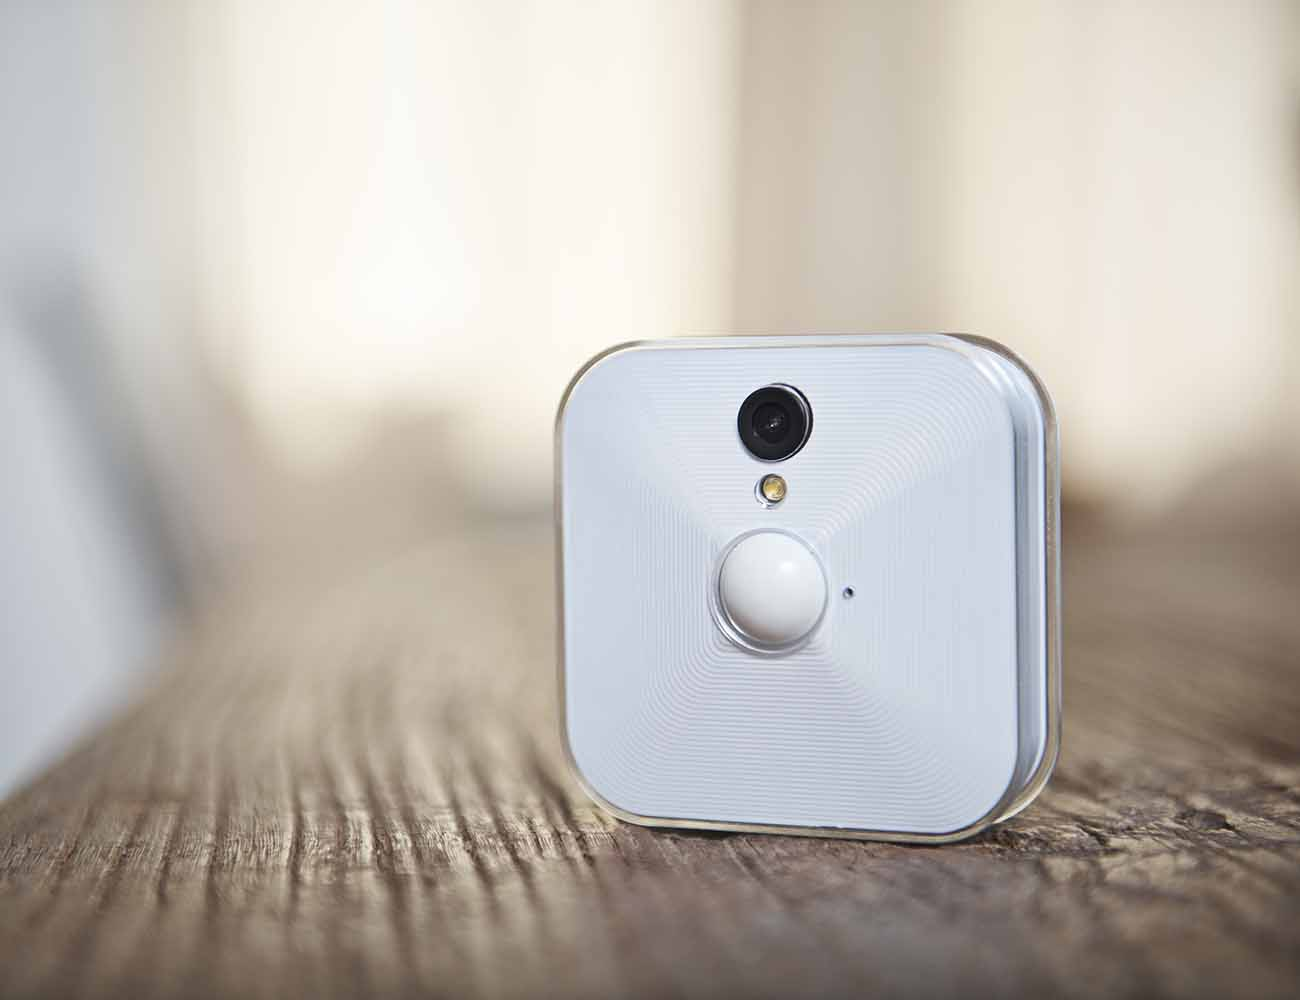 Blink – The Wireless HD Home Monitor and Security System